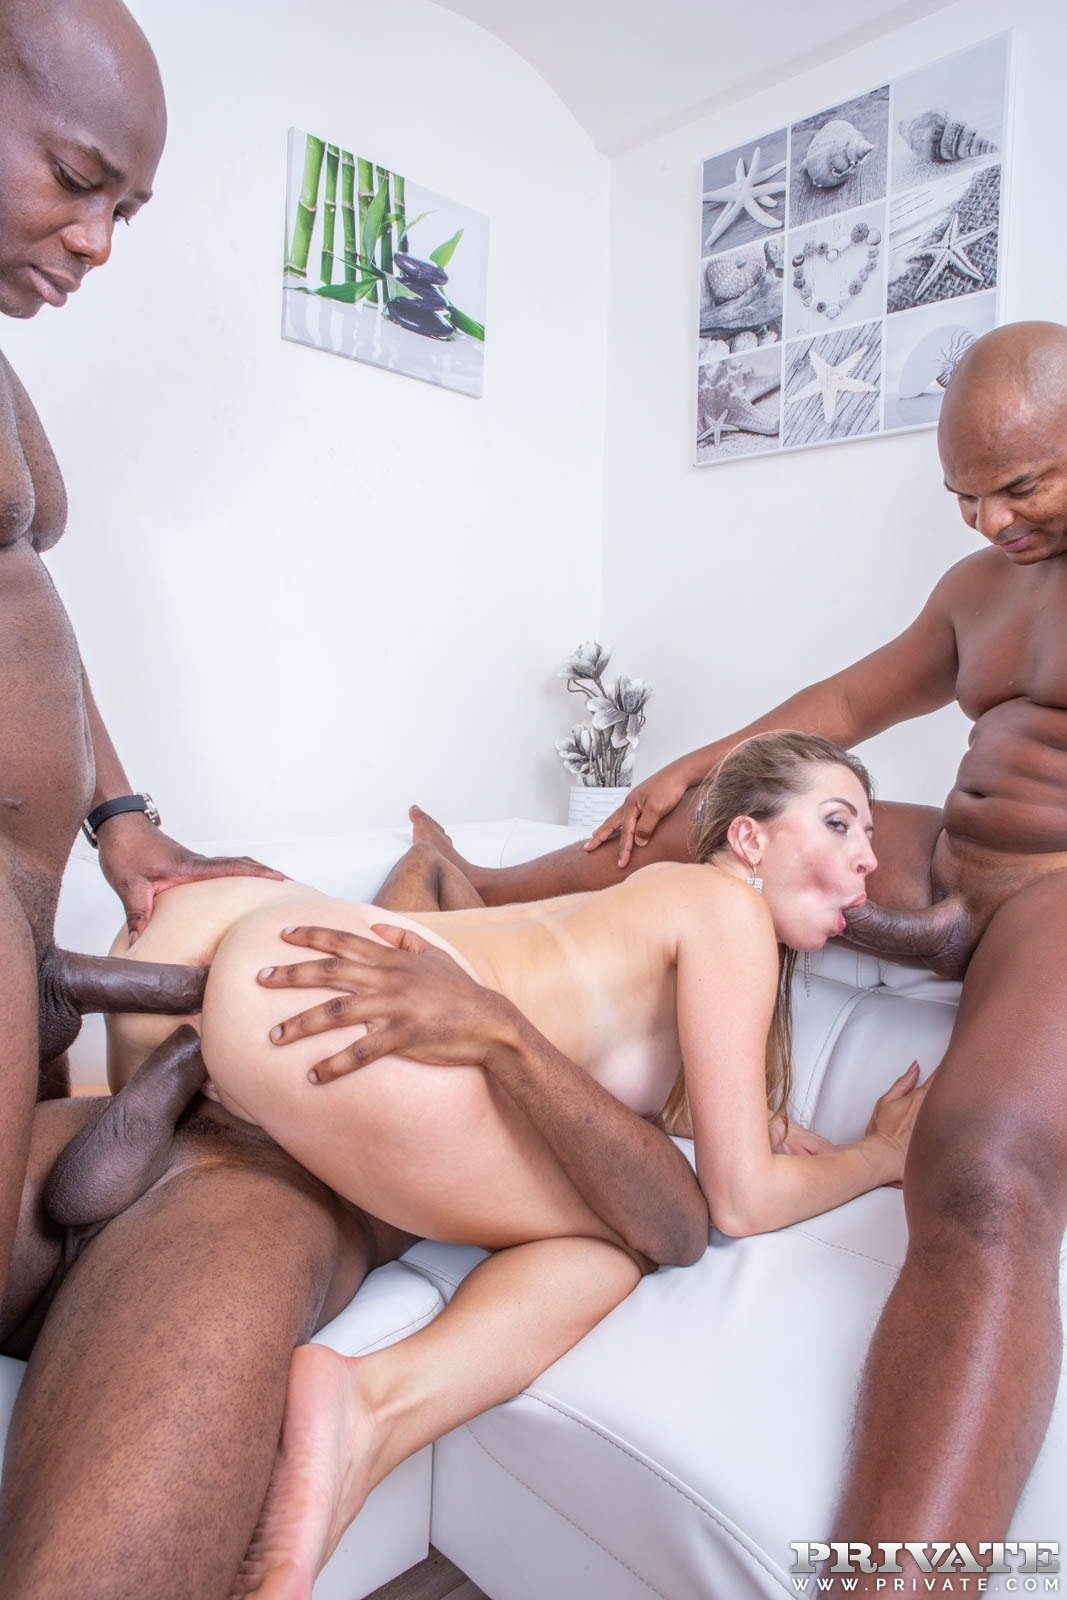 Xxx local kanada Real amature homemade porn amazing black milf